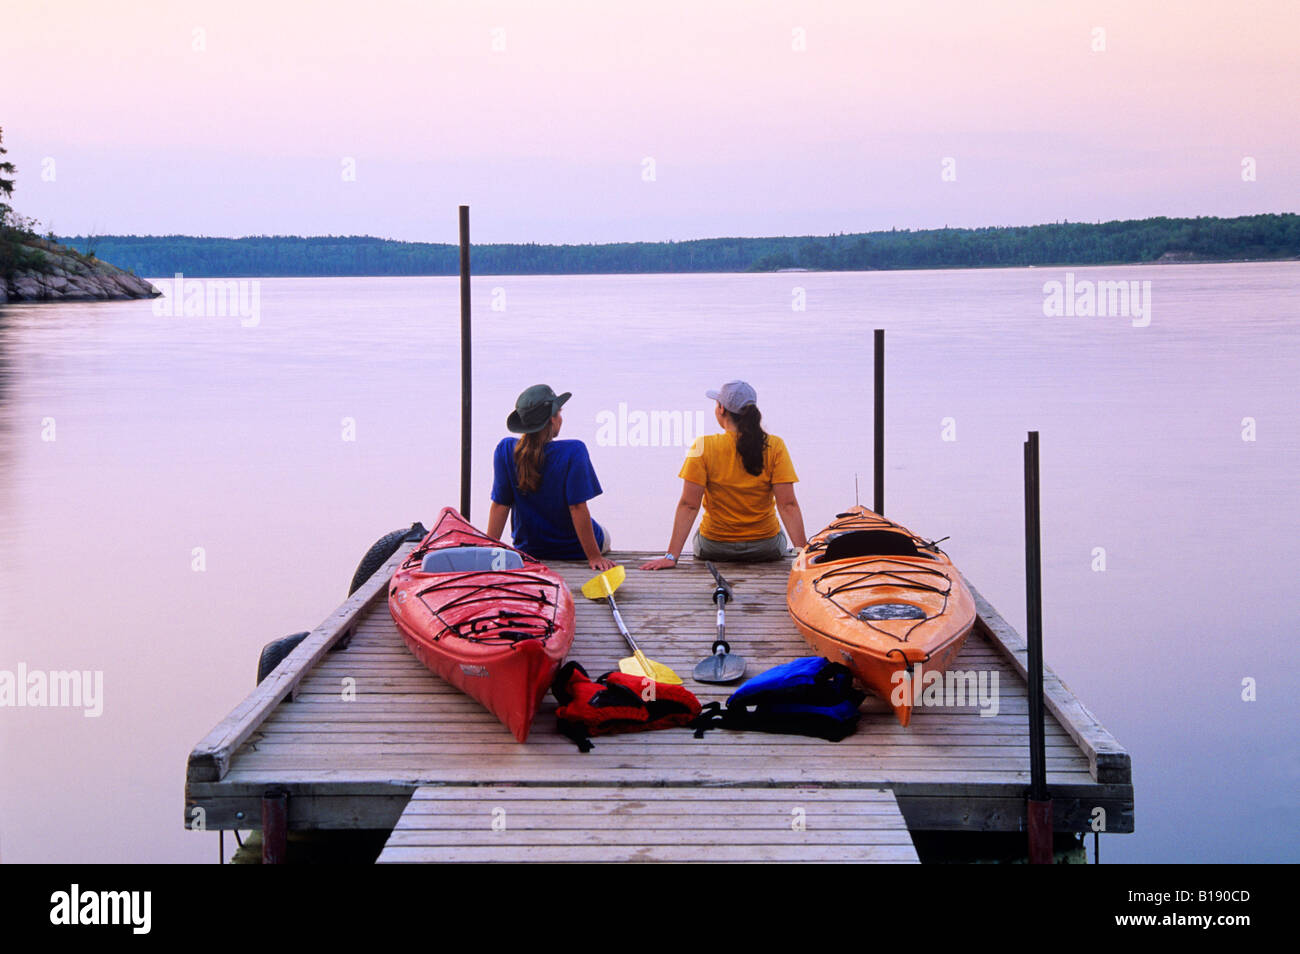 Kayakers an Nutimik Lake campground boat dock, Whiteshell Provincial Park, Manitoba, Canada. - Stock Image